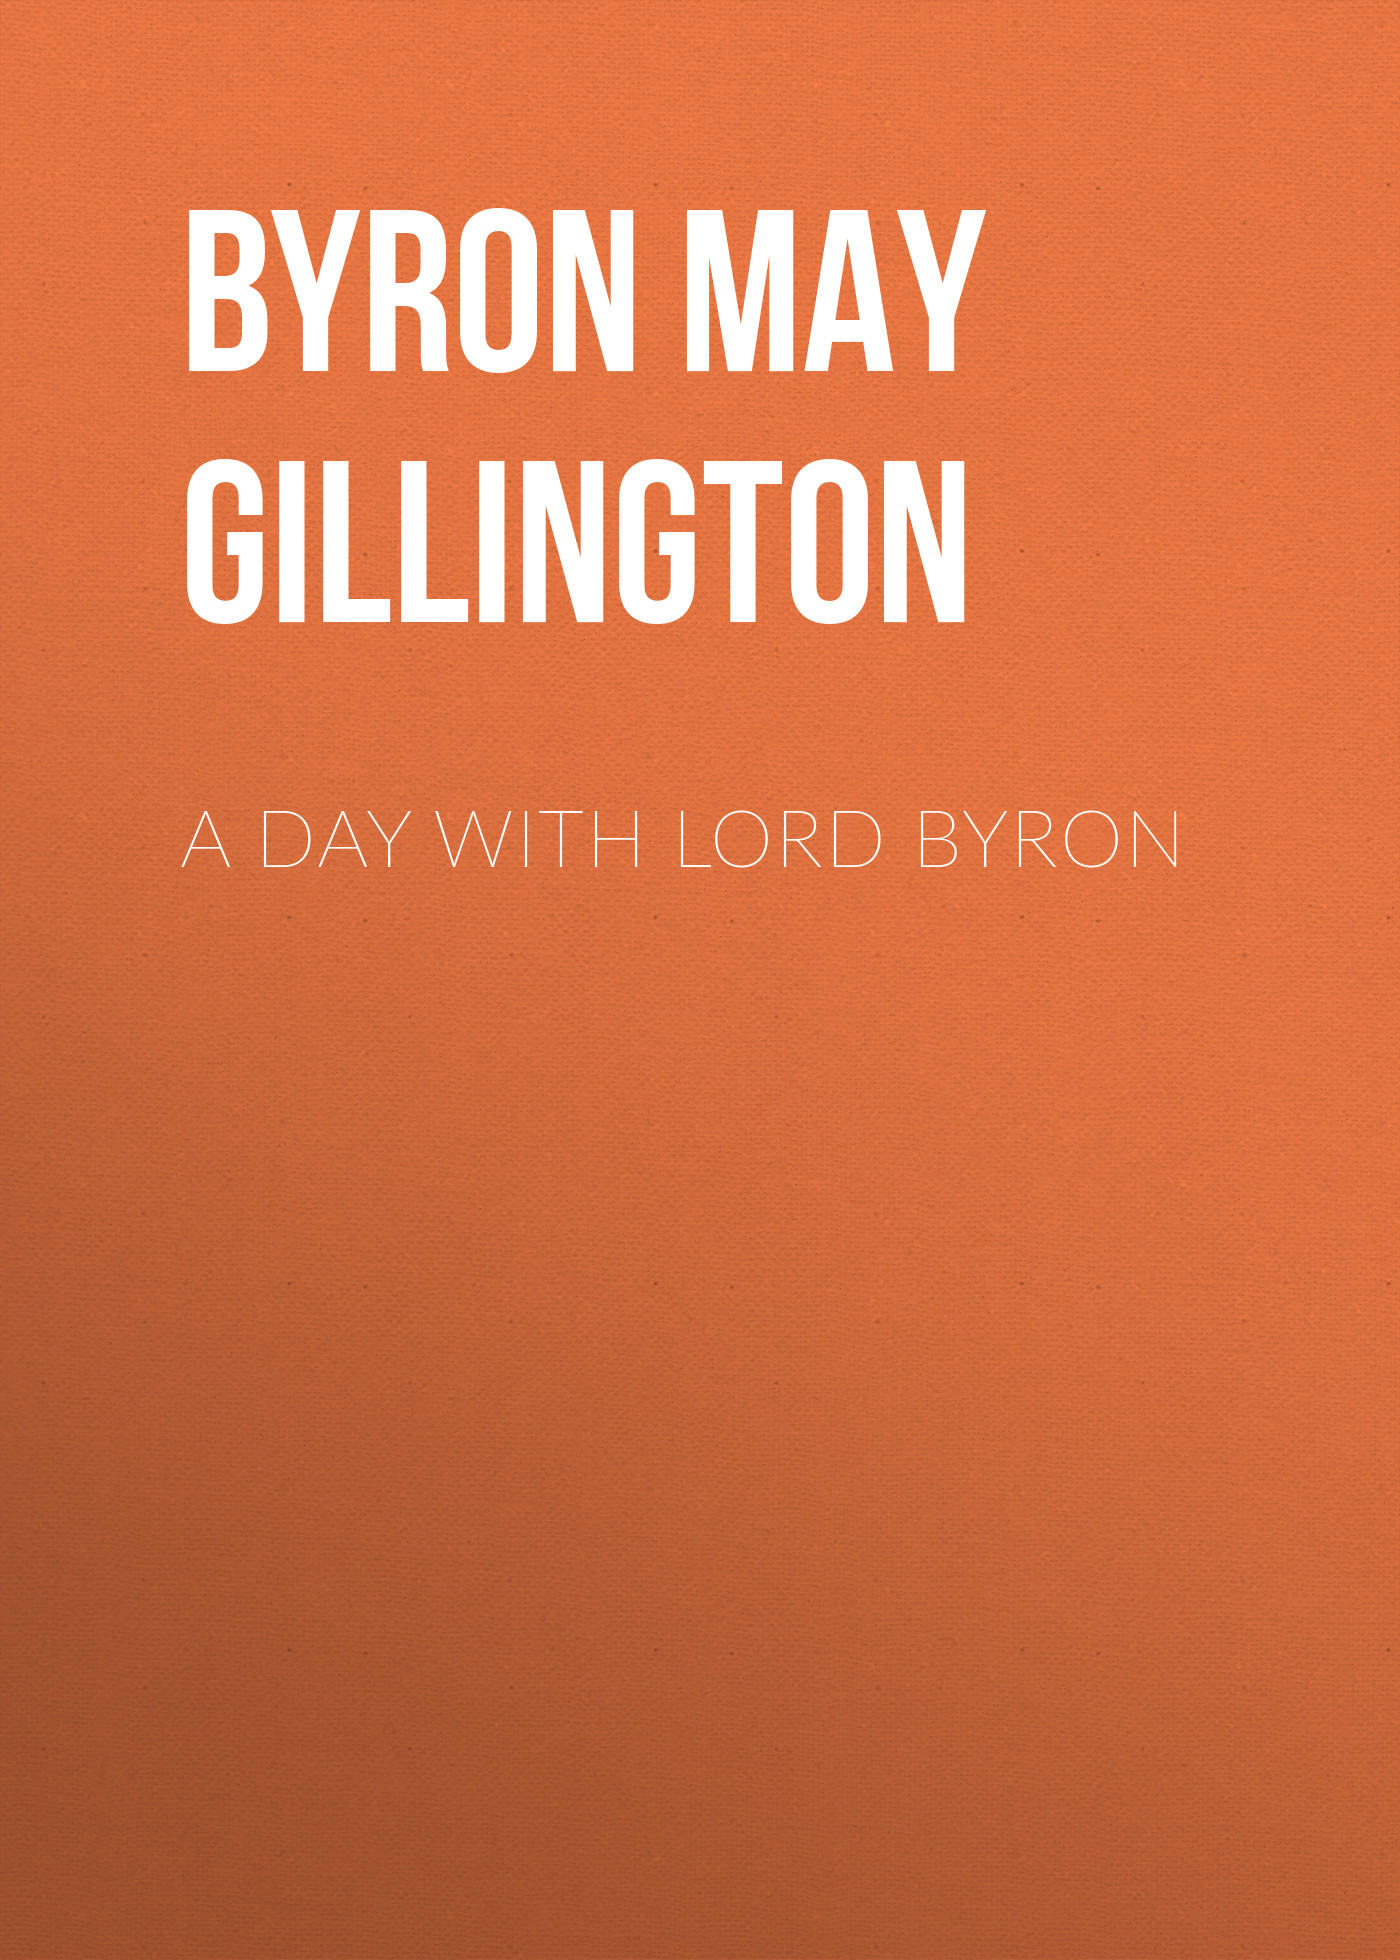 лучшая цена Byron May Clarissa Gillington A Day with Lord Byron